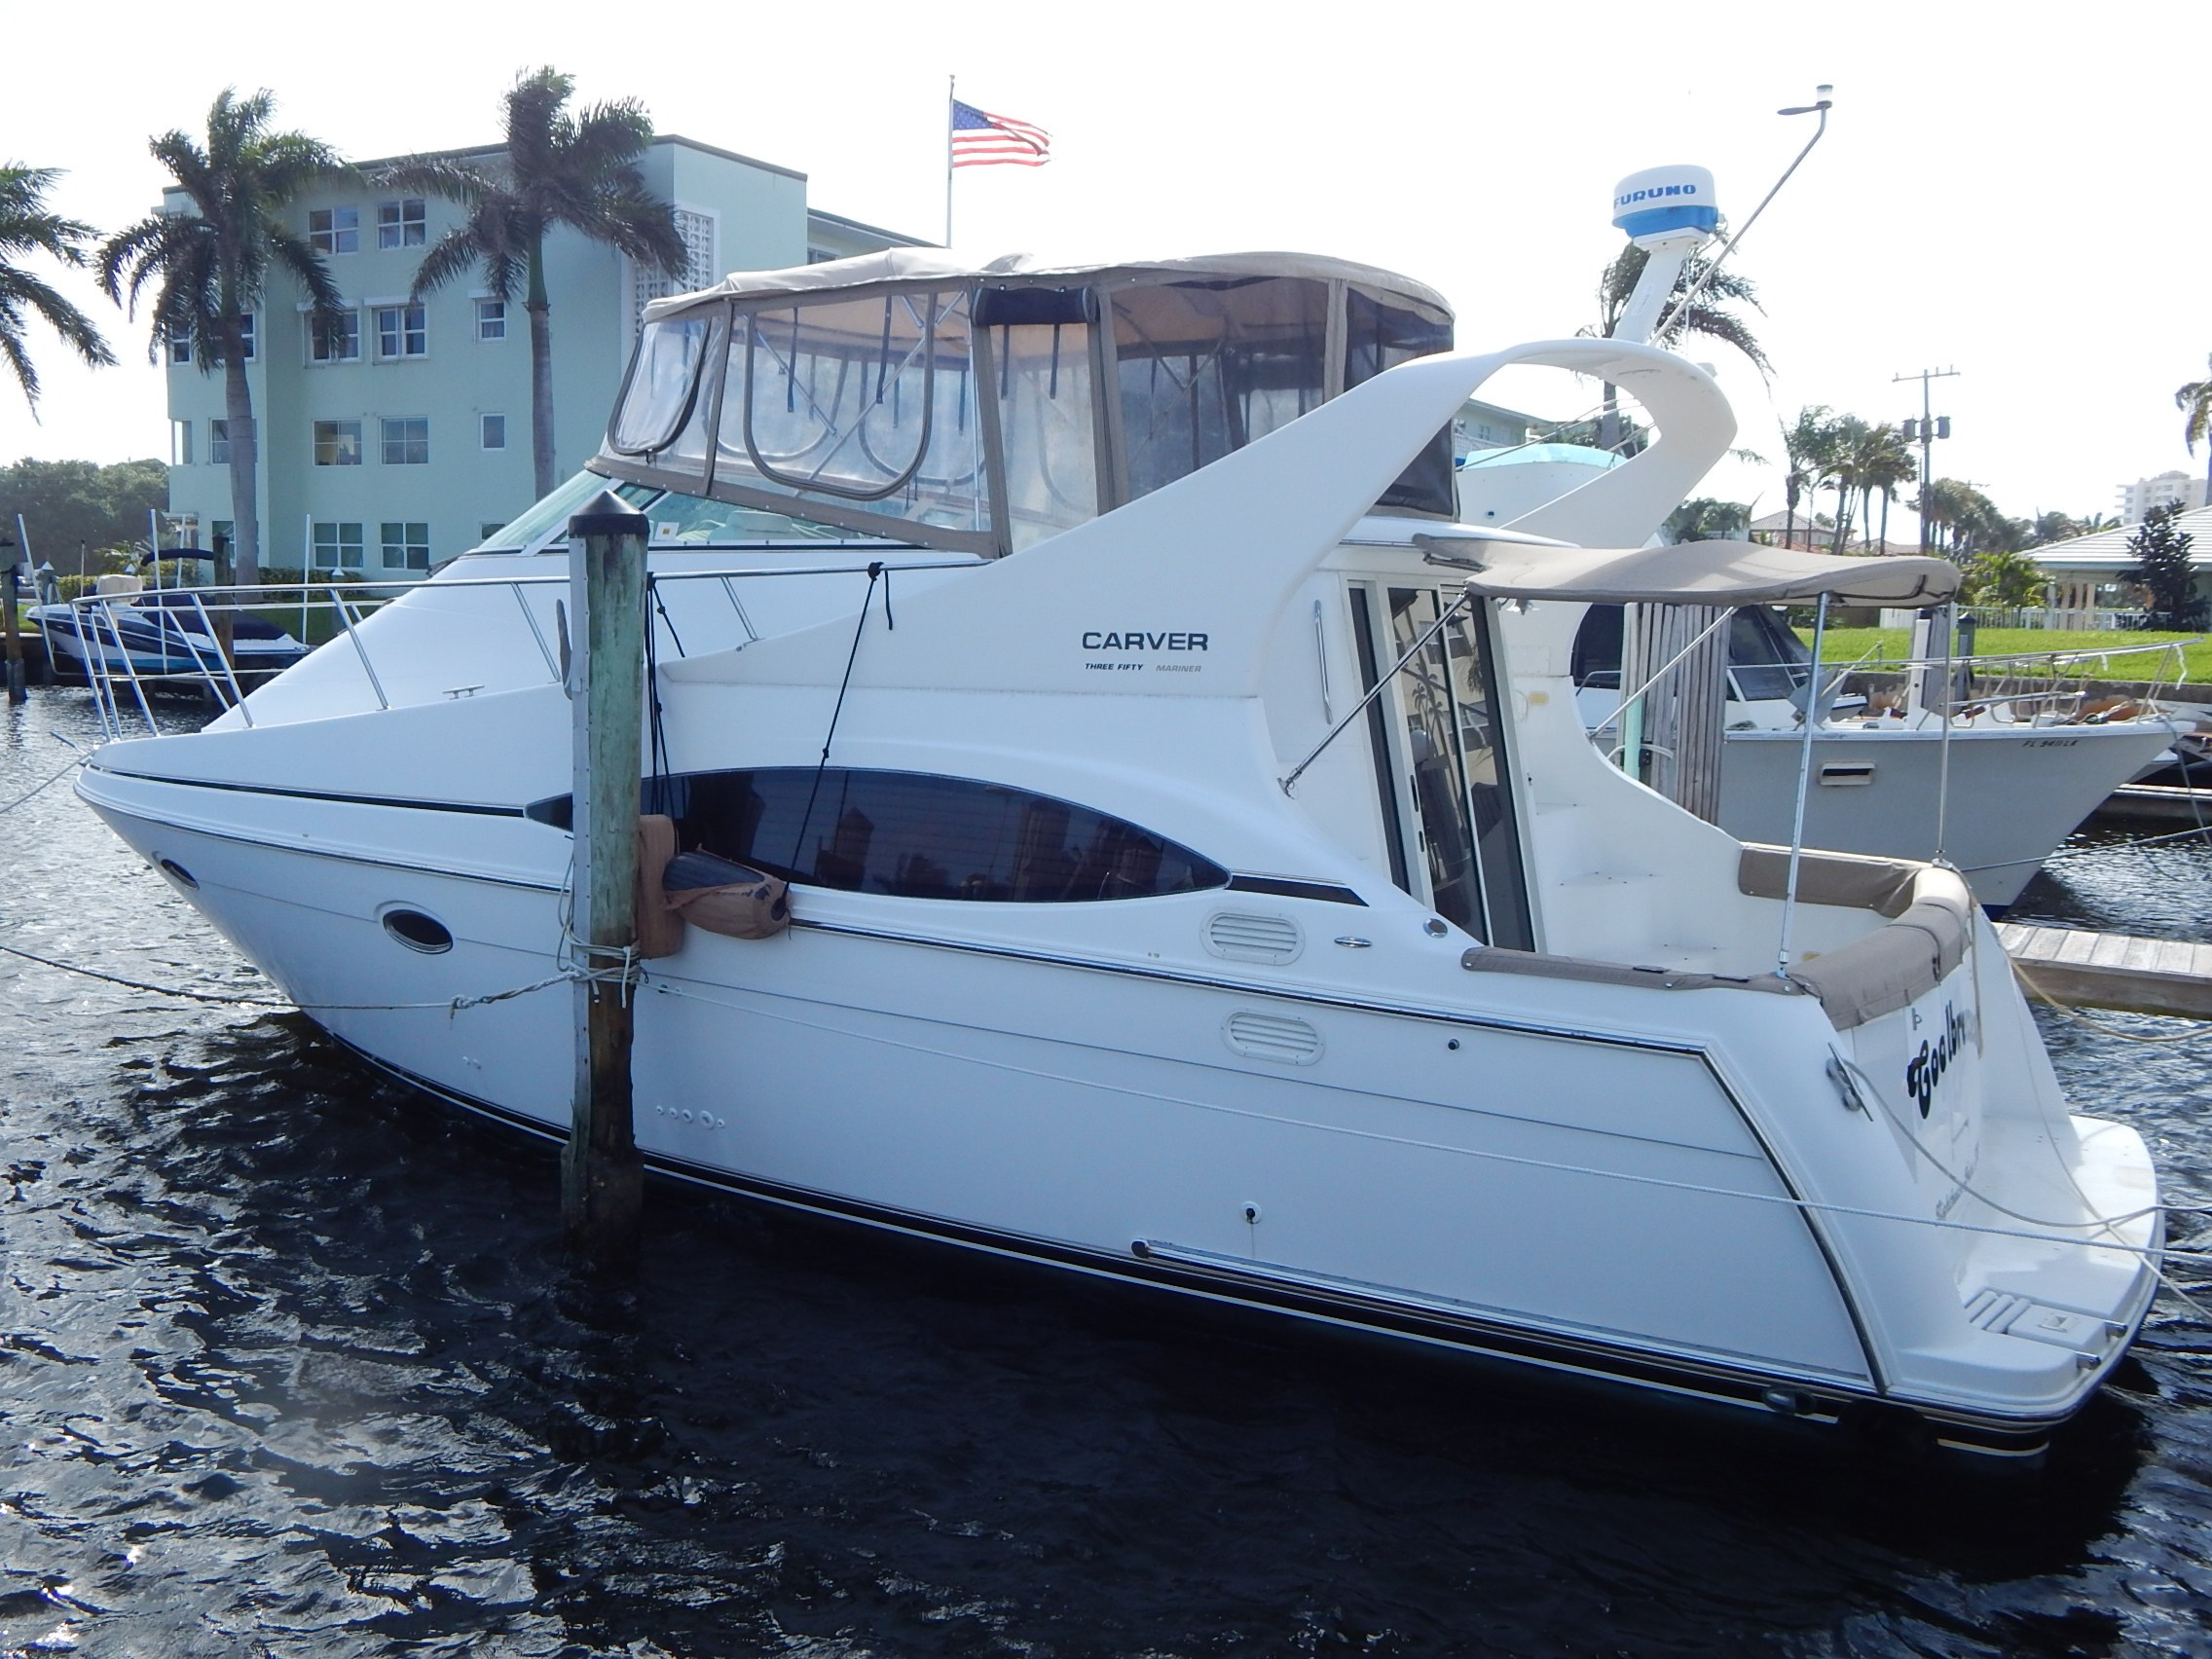 2001 CARVER 350 Mariner Boat for Sale | 35 foot 2001 ...